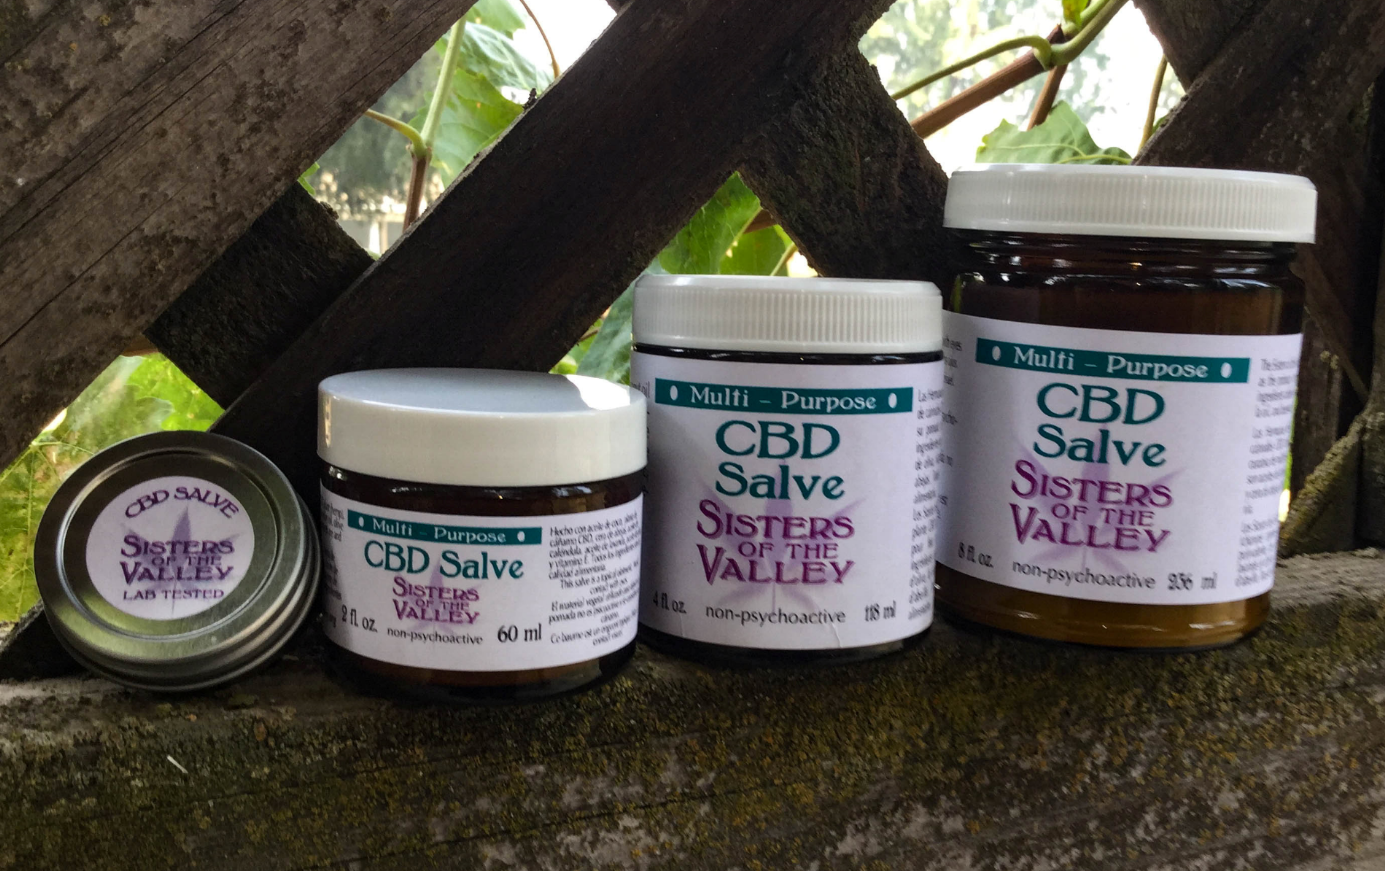 The sisters' CBD products. Credit: SWNS